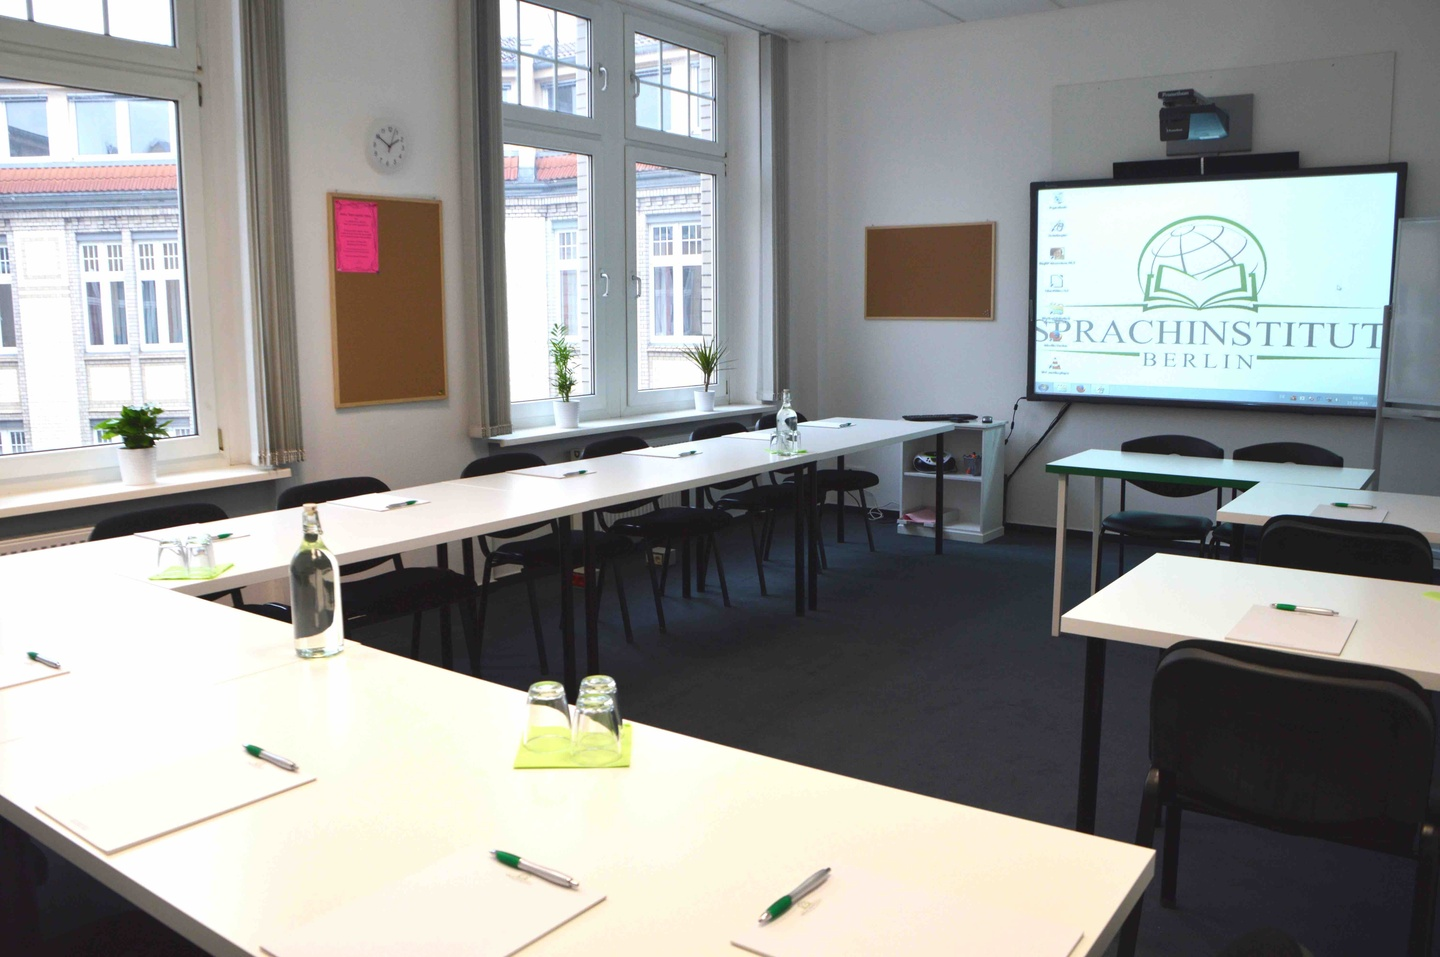 Berlin training rooms Meeting room Sprachinstitut Berlin - Room 2 image 1